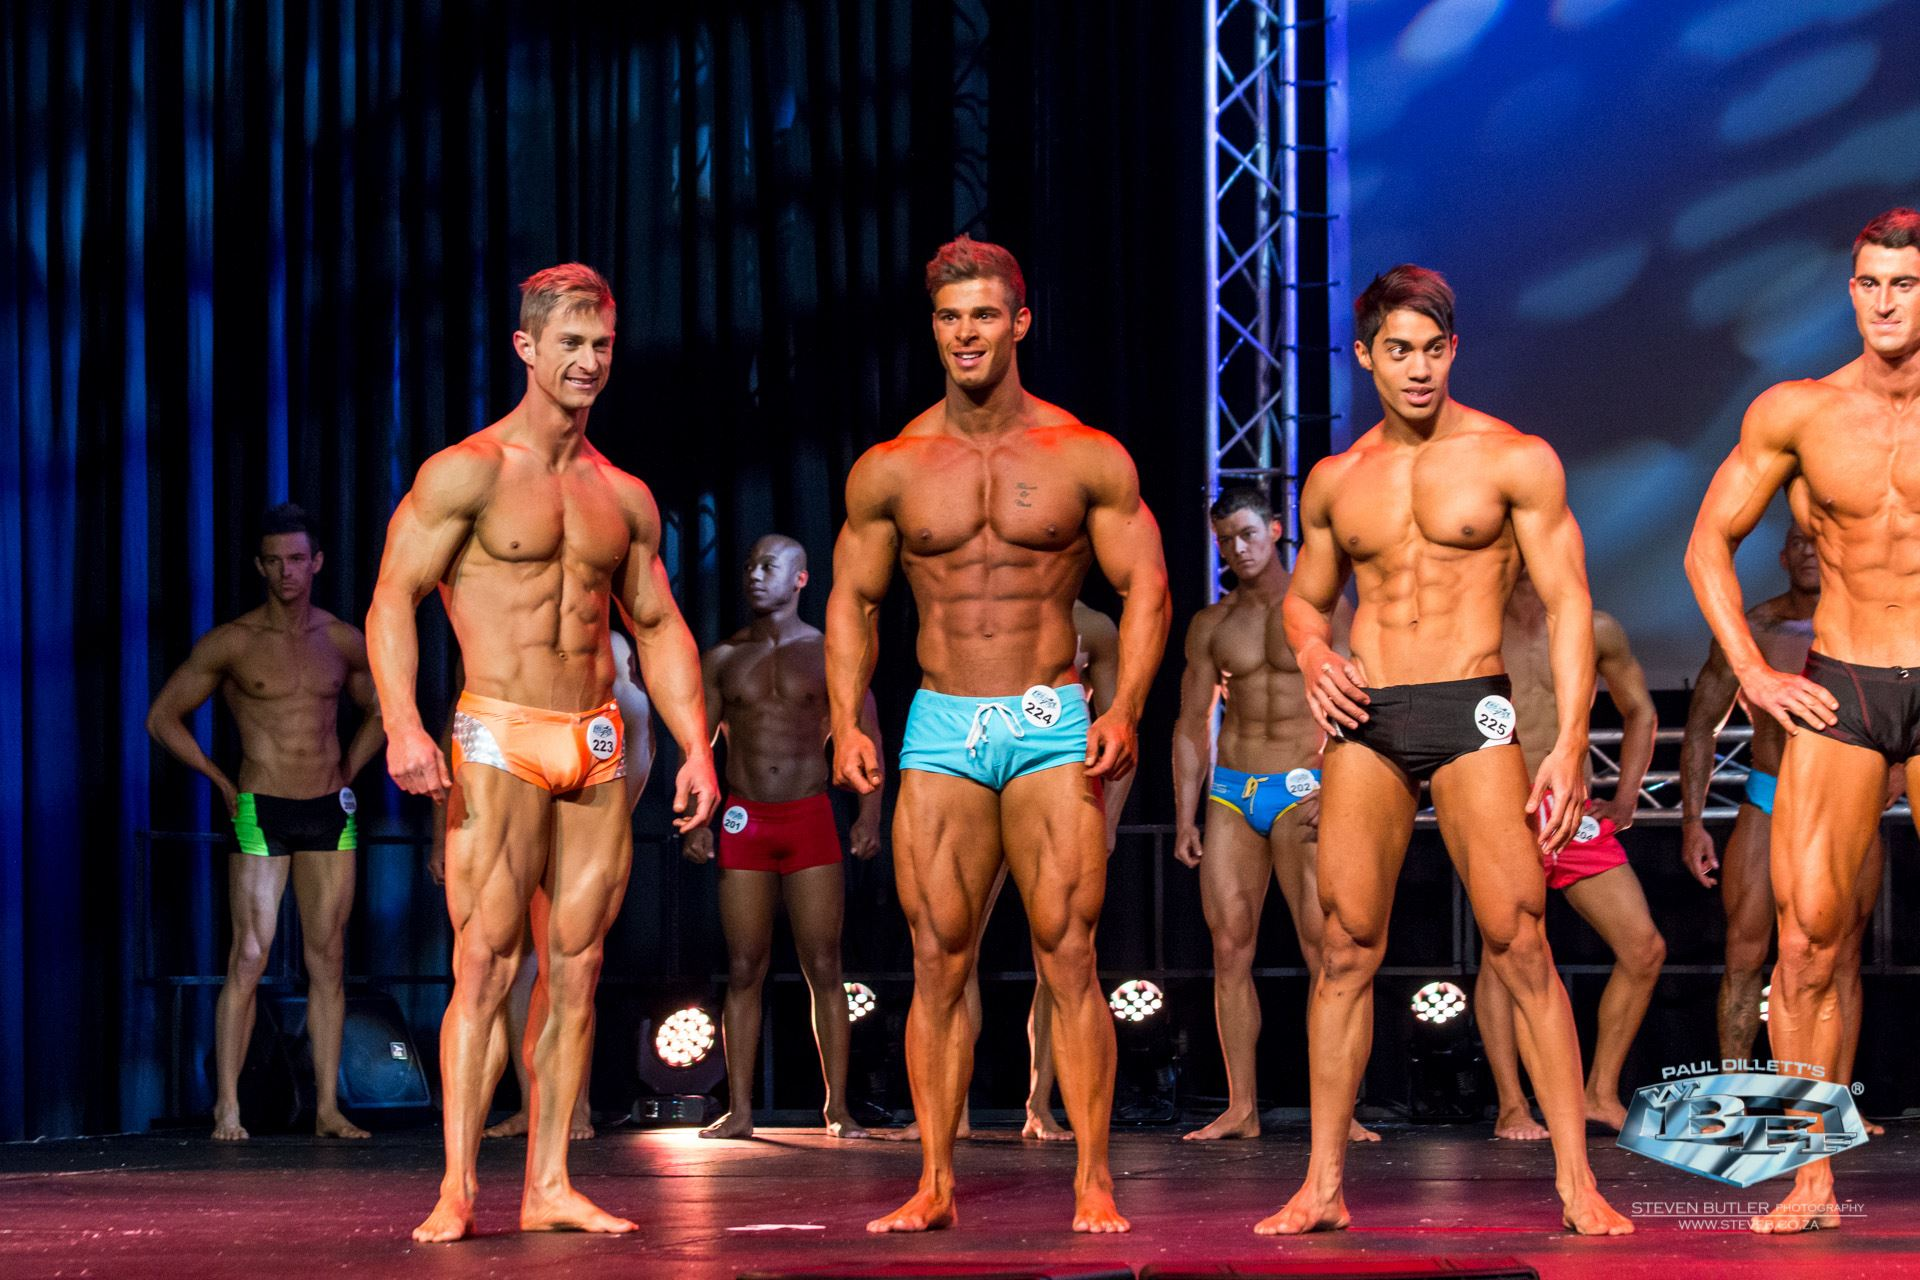 Fitness Show Mens lineup